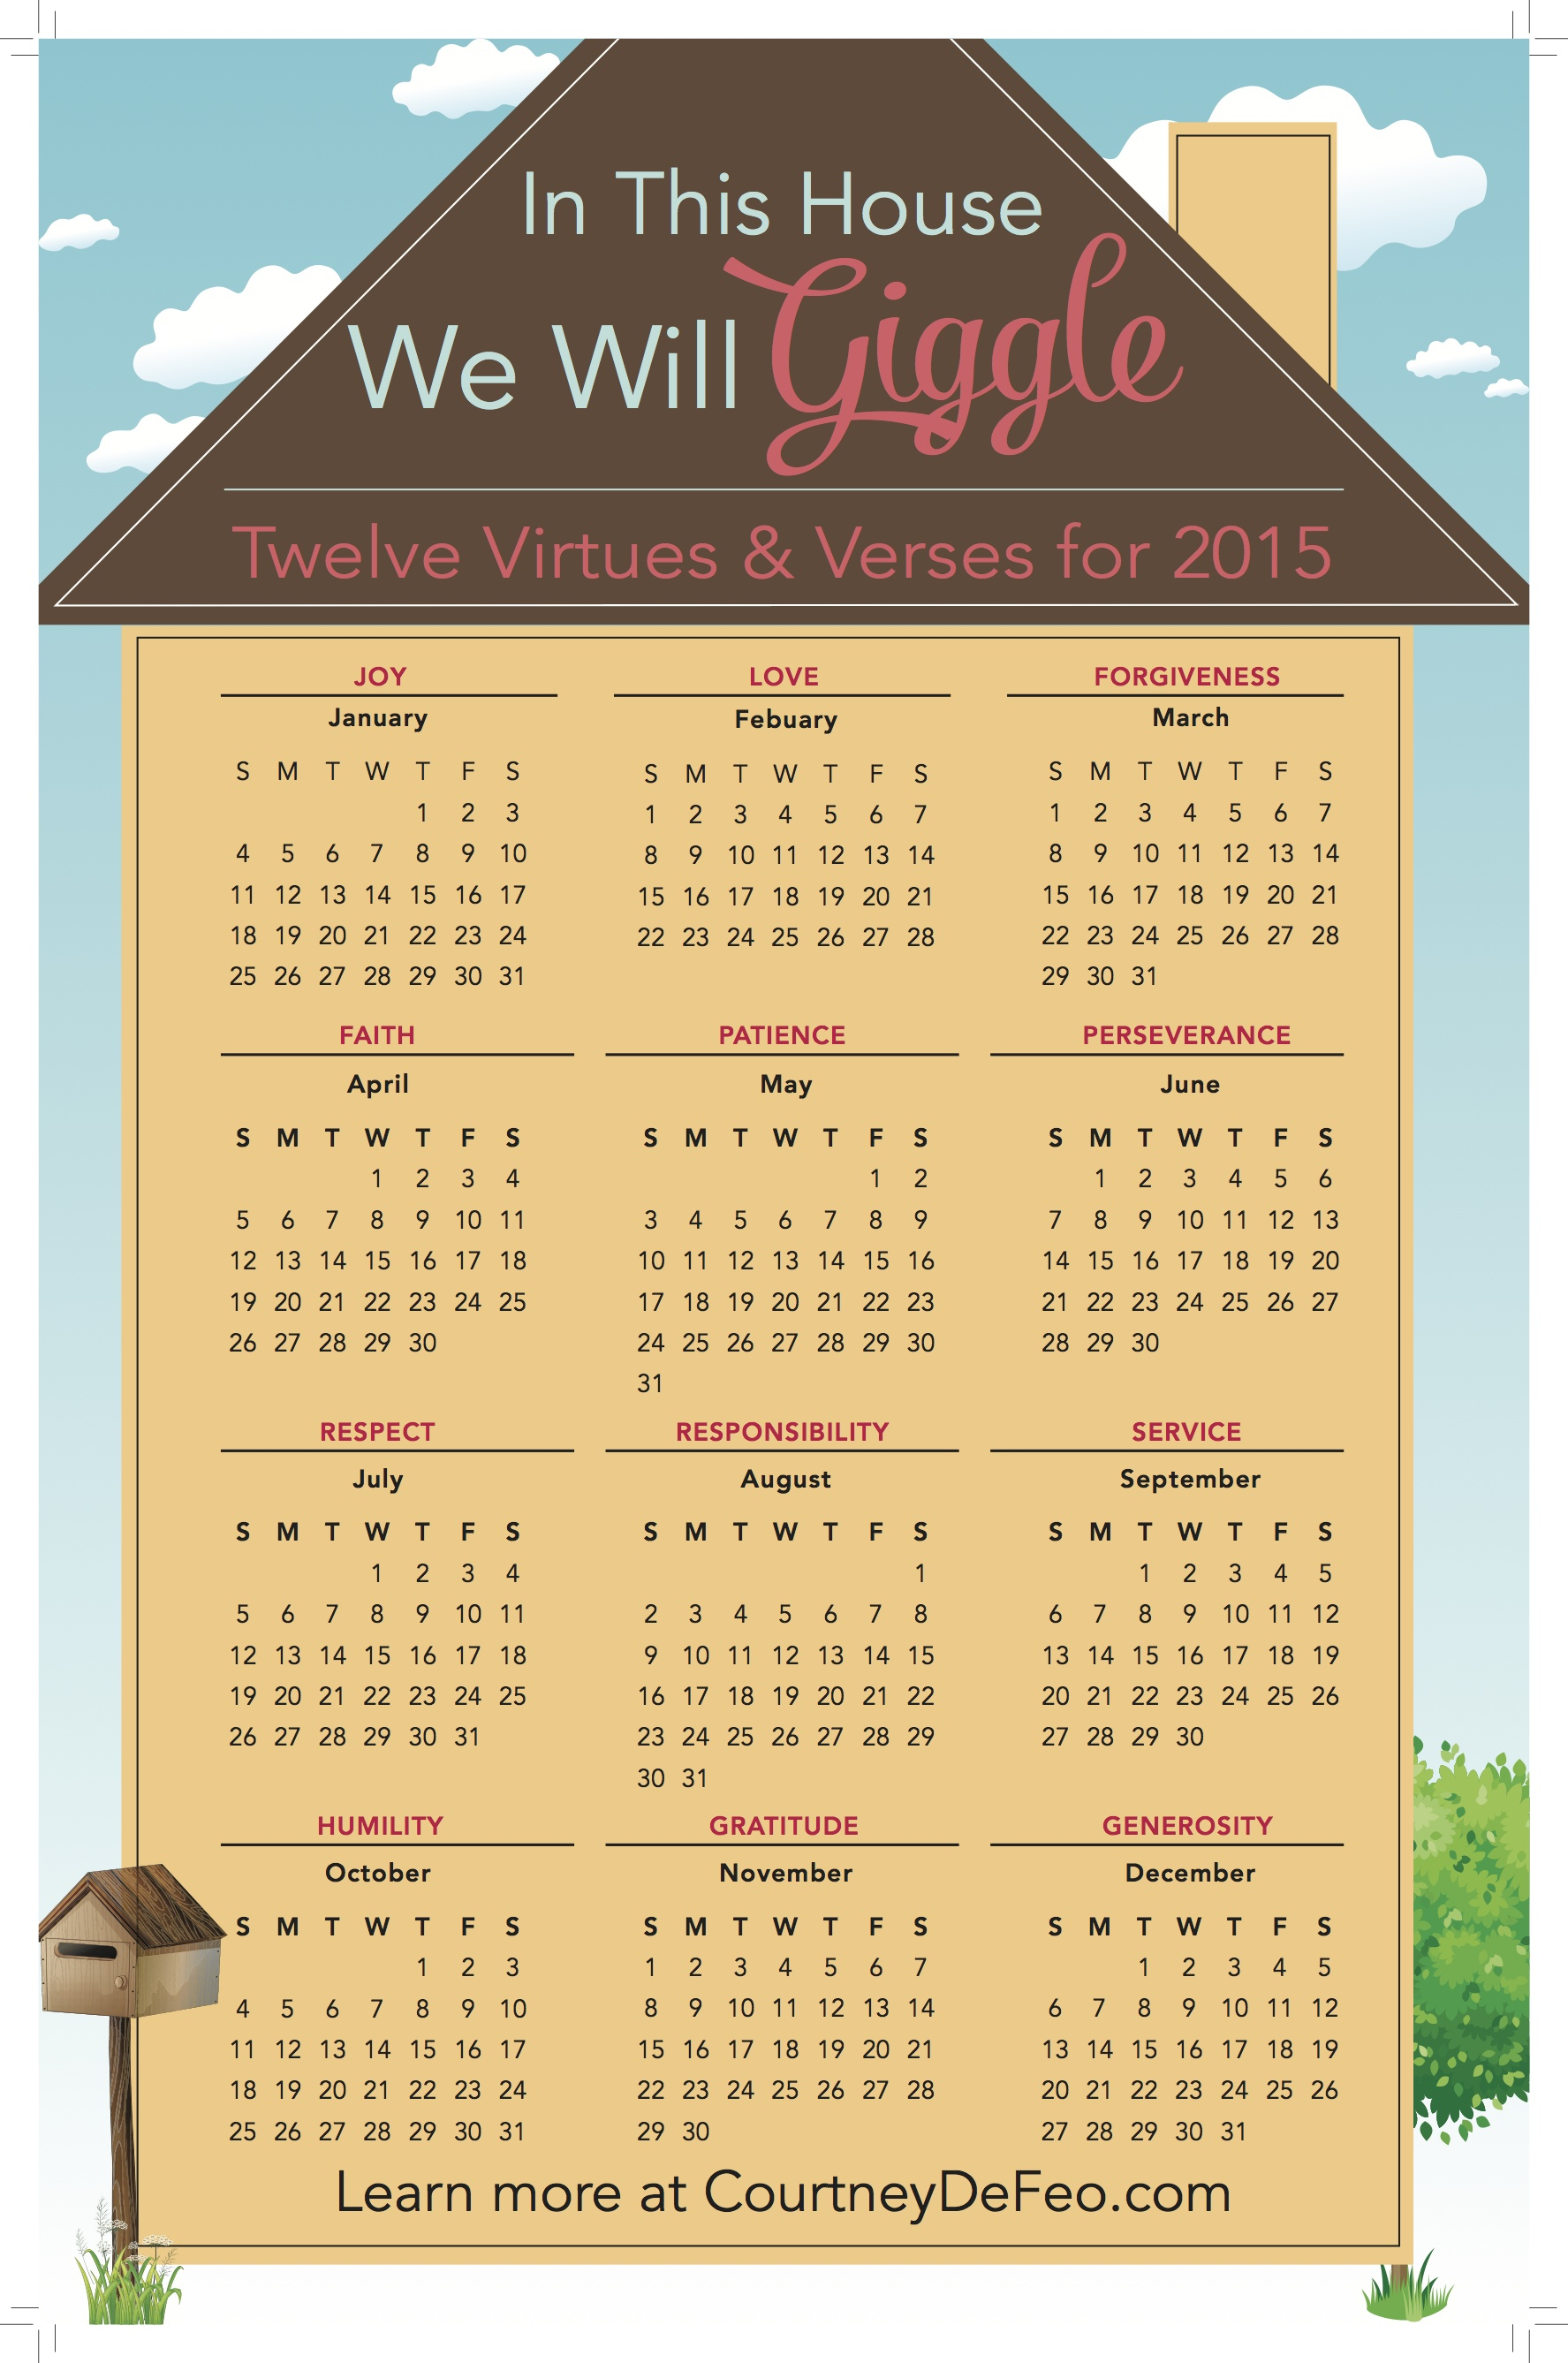 12 Virtues in this house, we will giggle - launch day giveaway